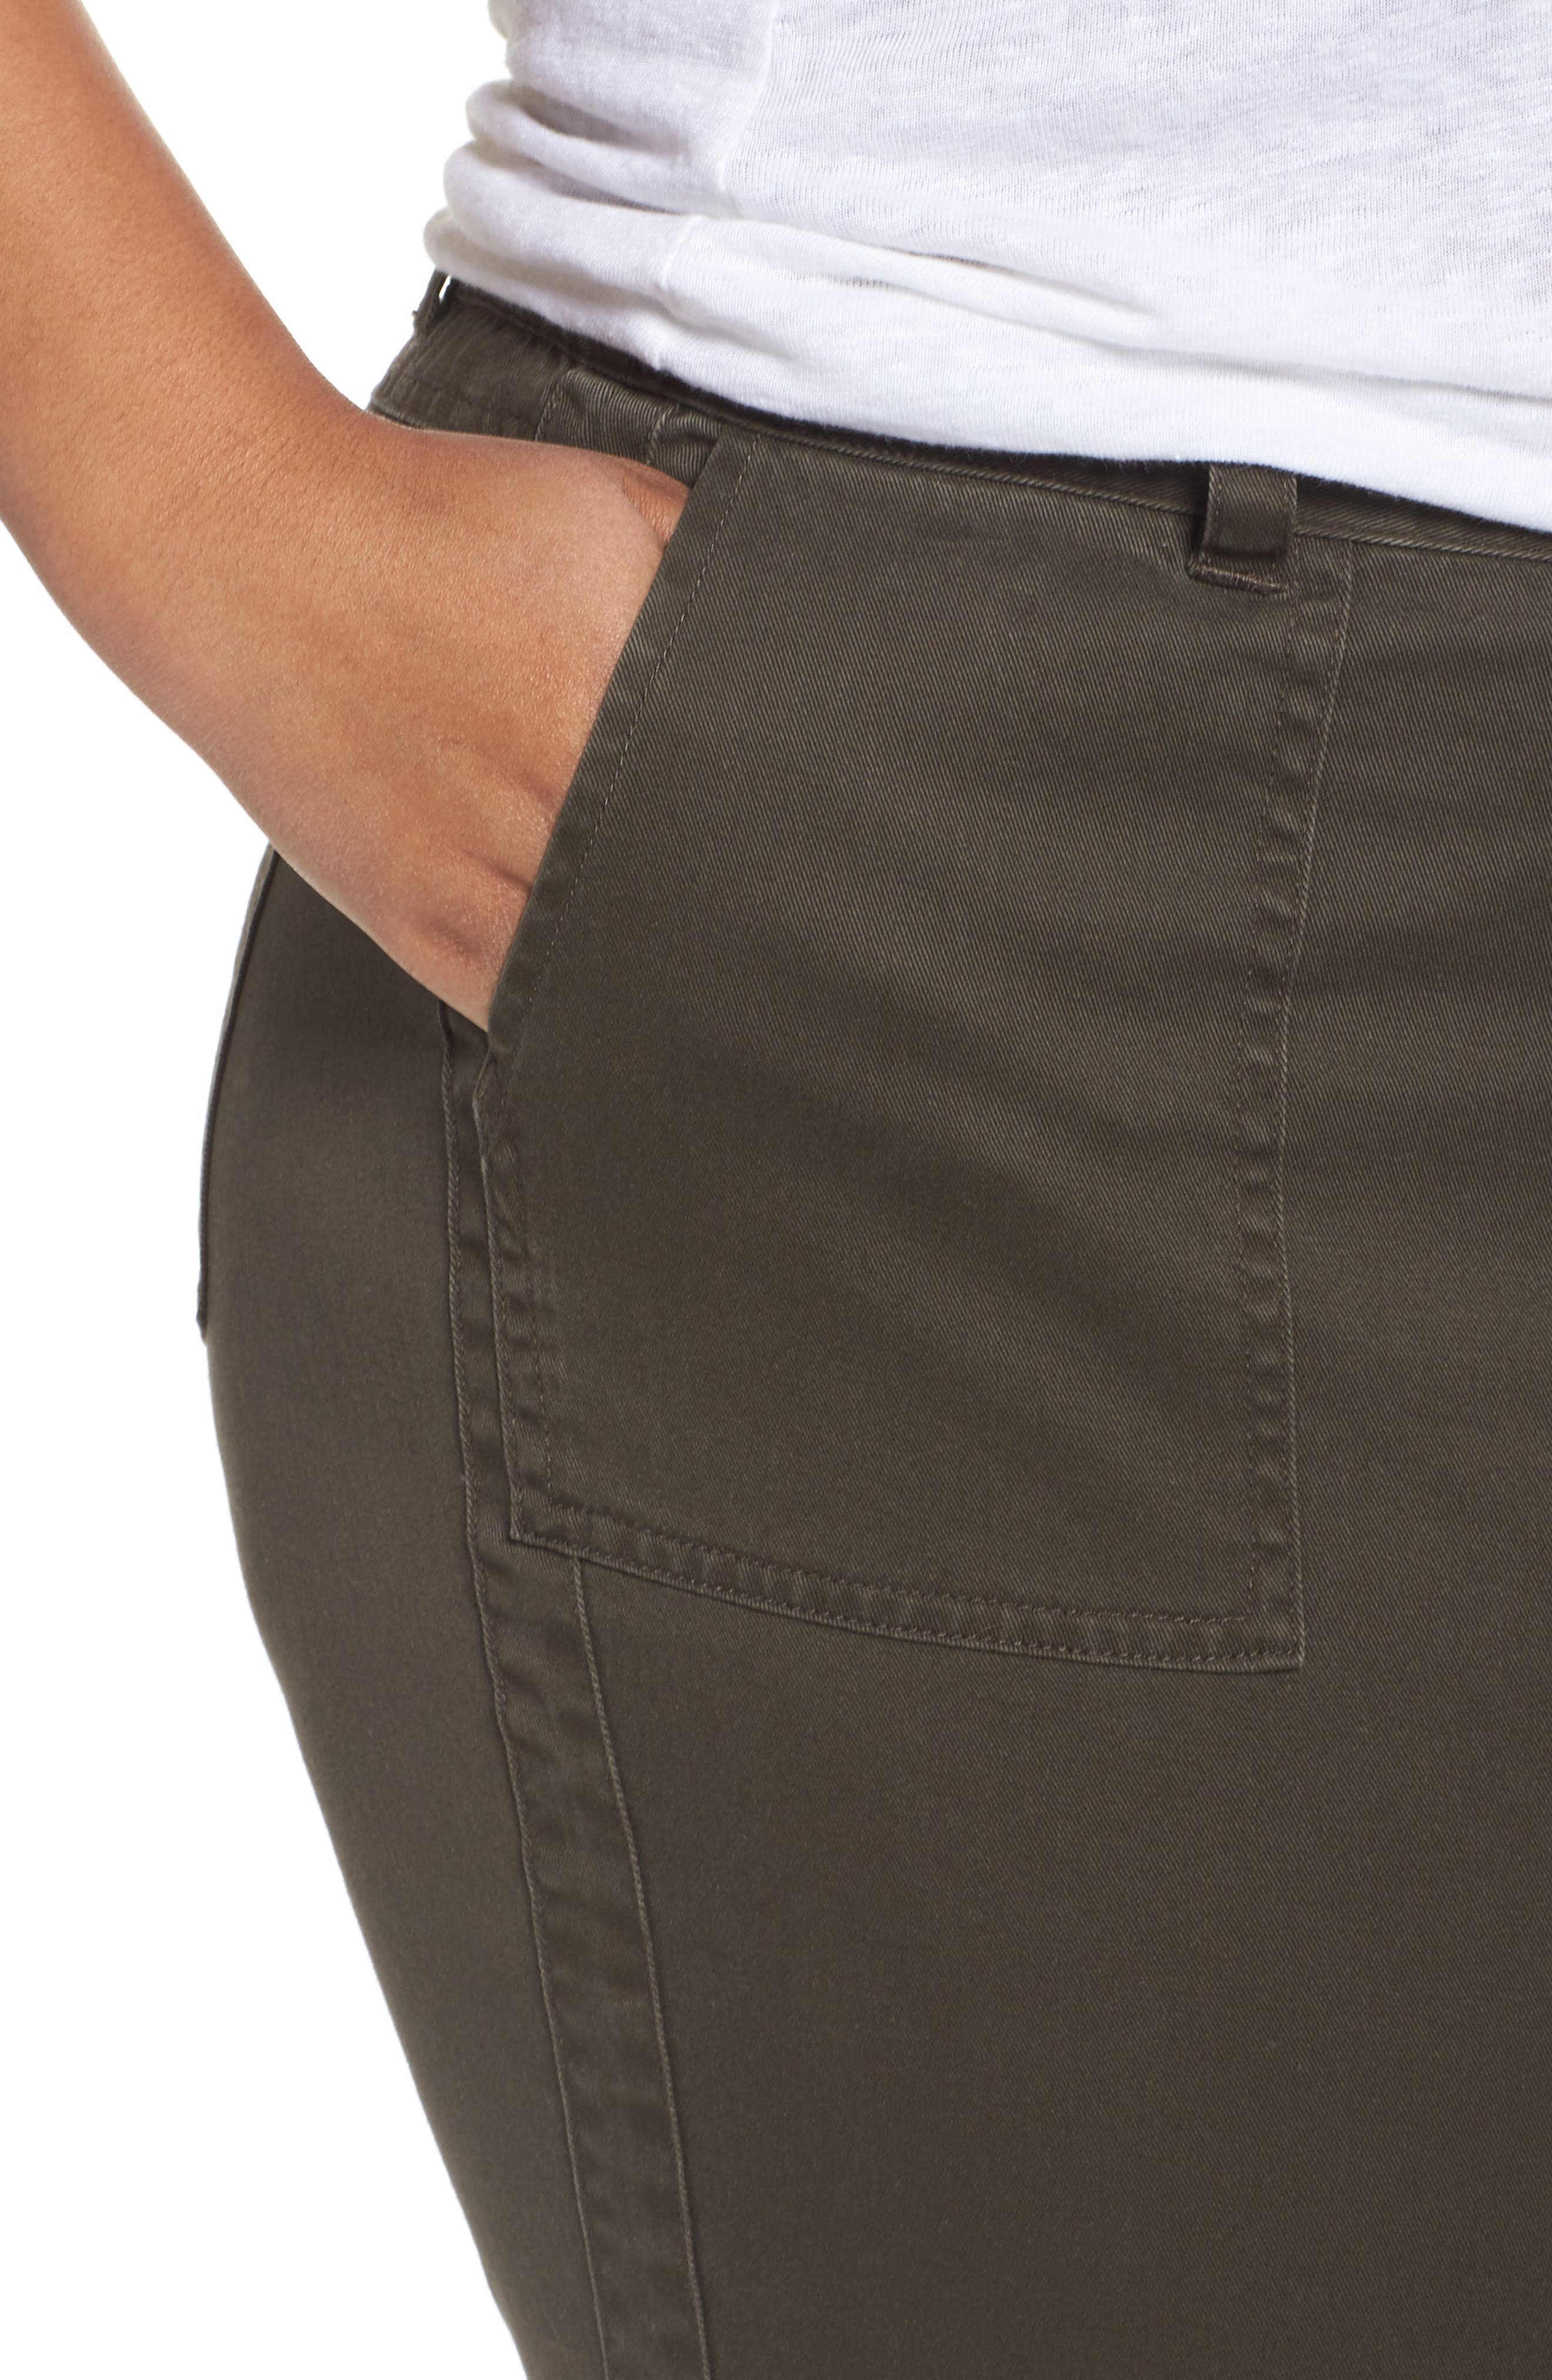 Twill Ankle Pants,                             Alternate thumbnail 4, color,                             311